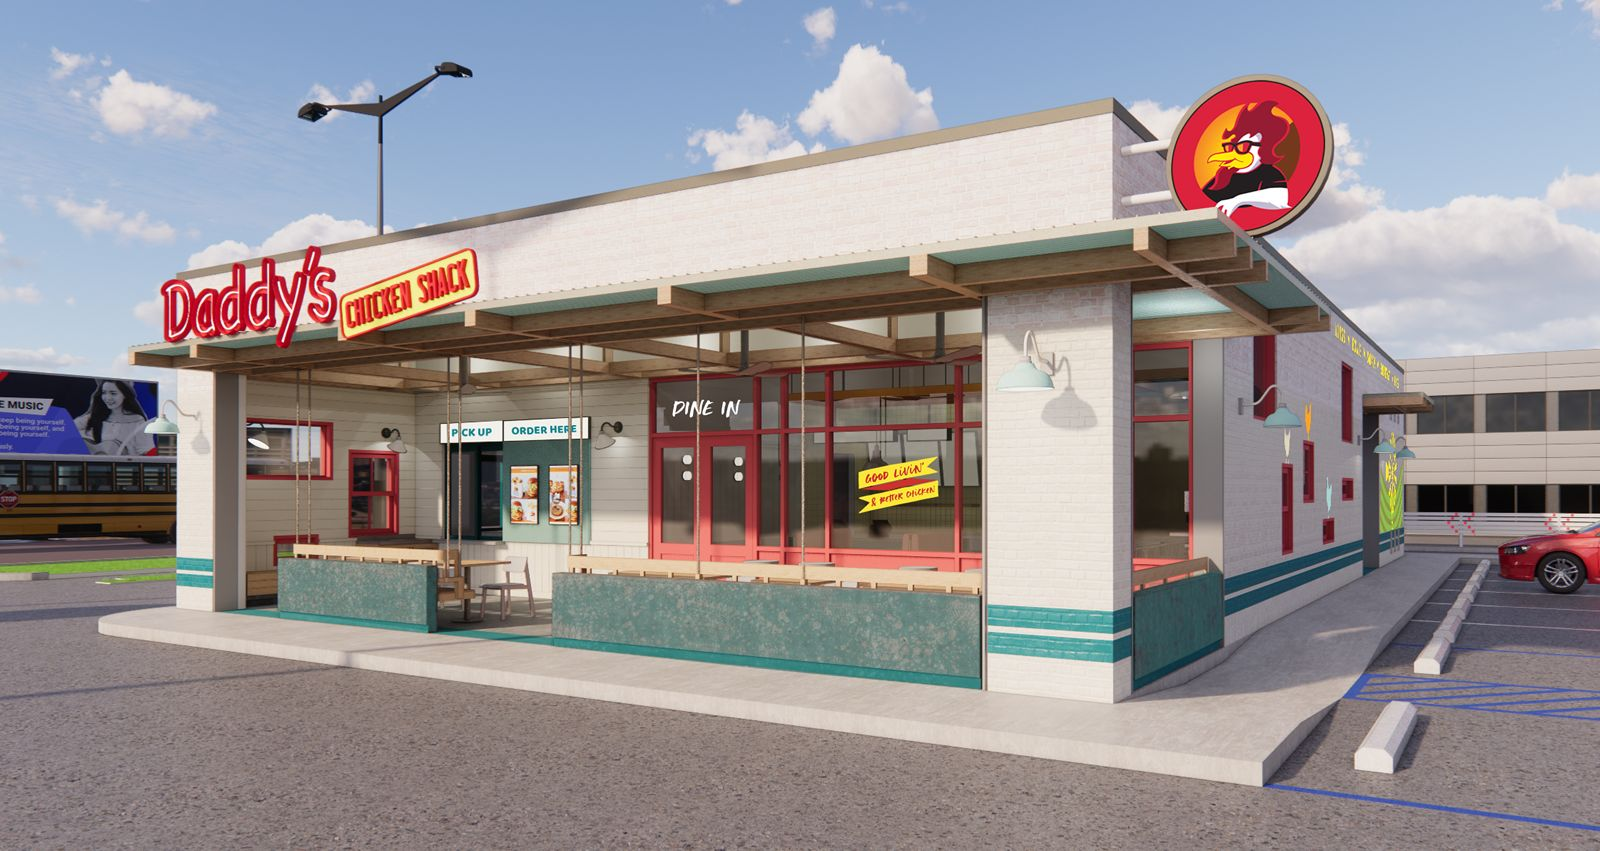 Daddy's Chicken Shack Seeks Growth and Innovation Through Brand Repositioning